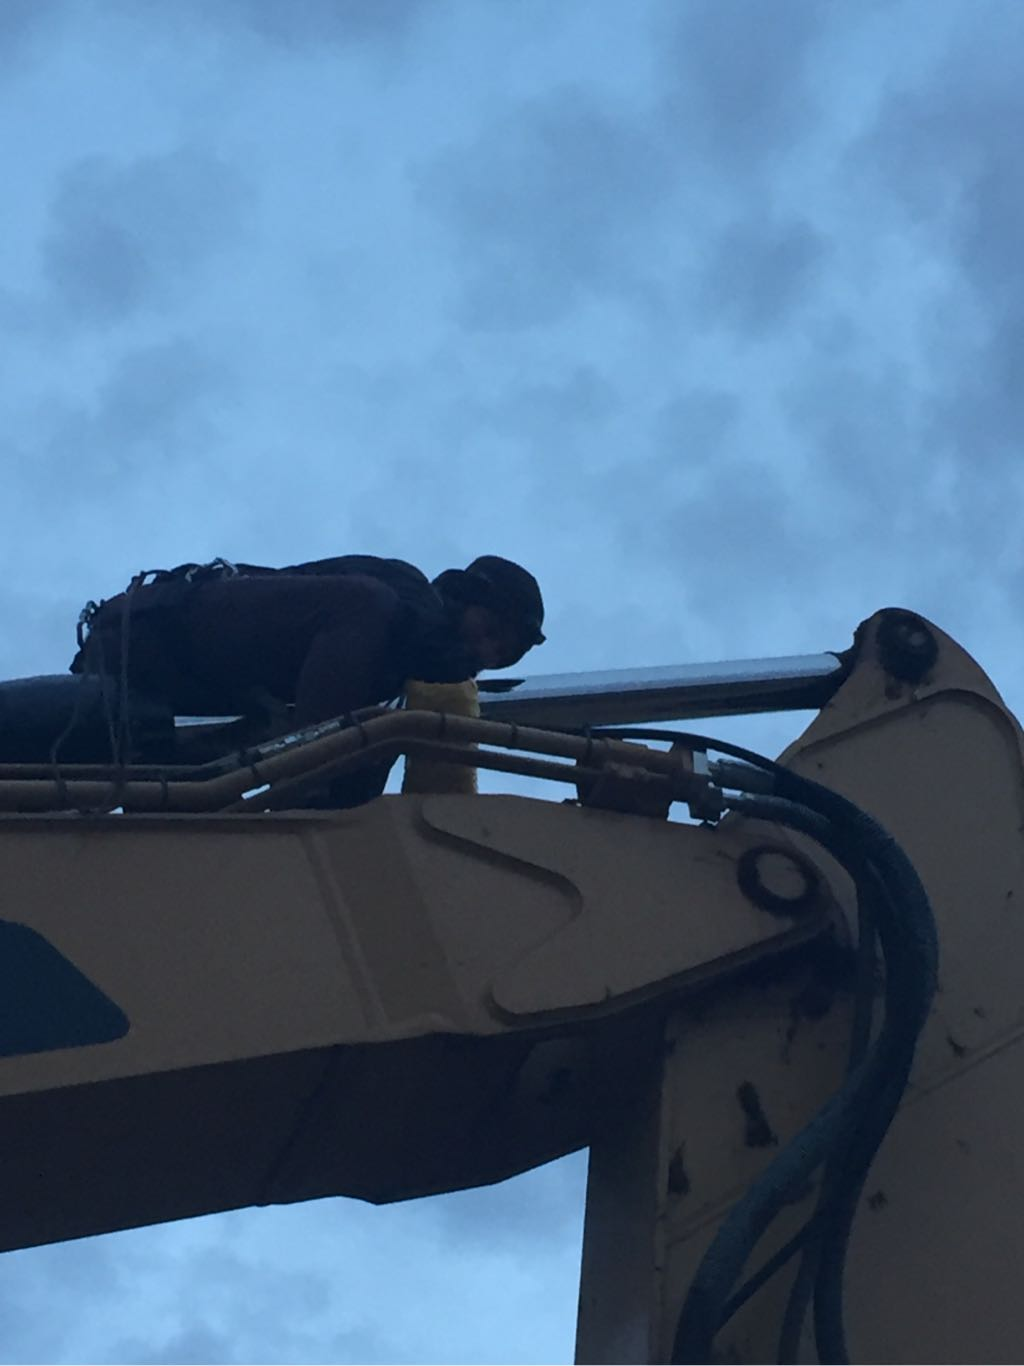 A water protector attaching themselves to the hydraulic arm of a DAPL excavator using a lockbox device